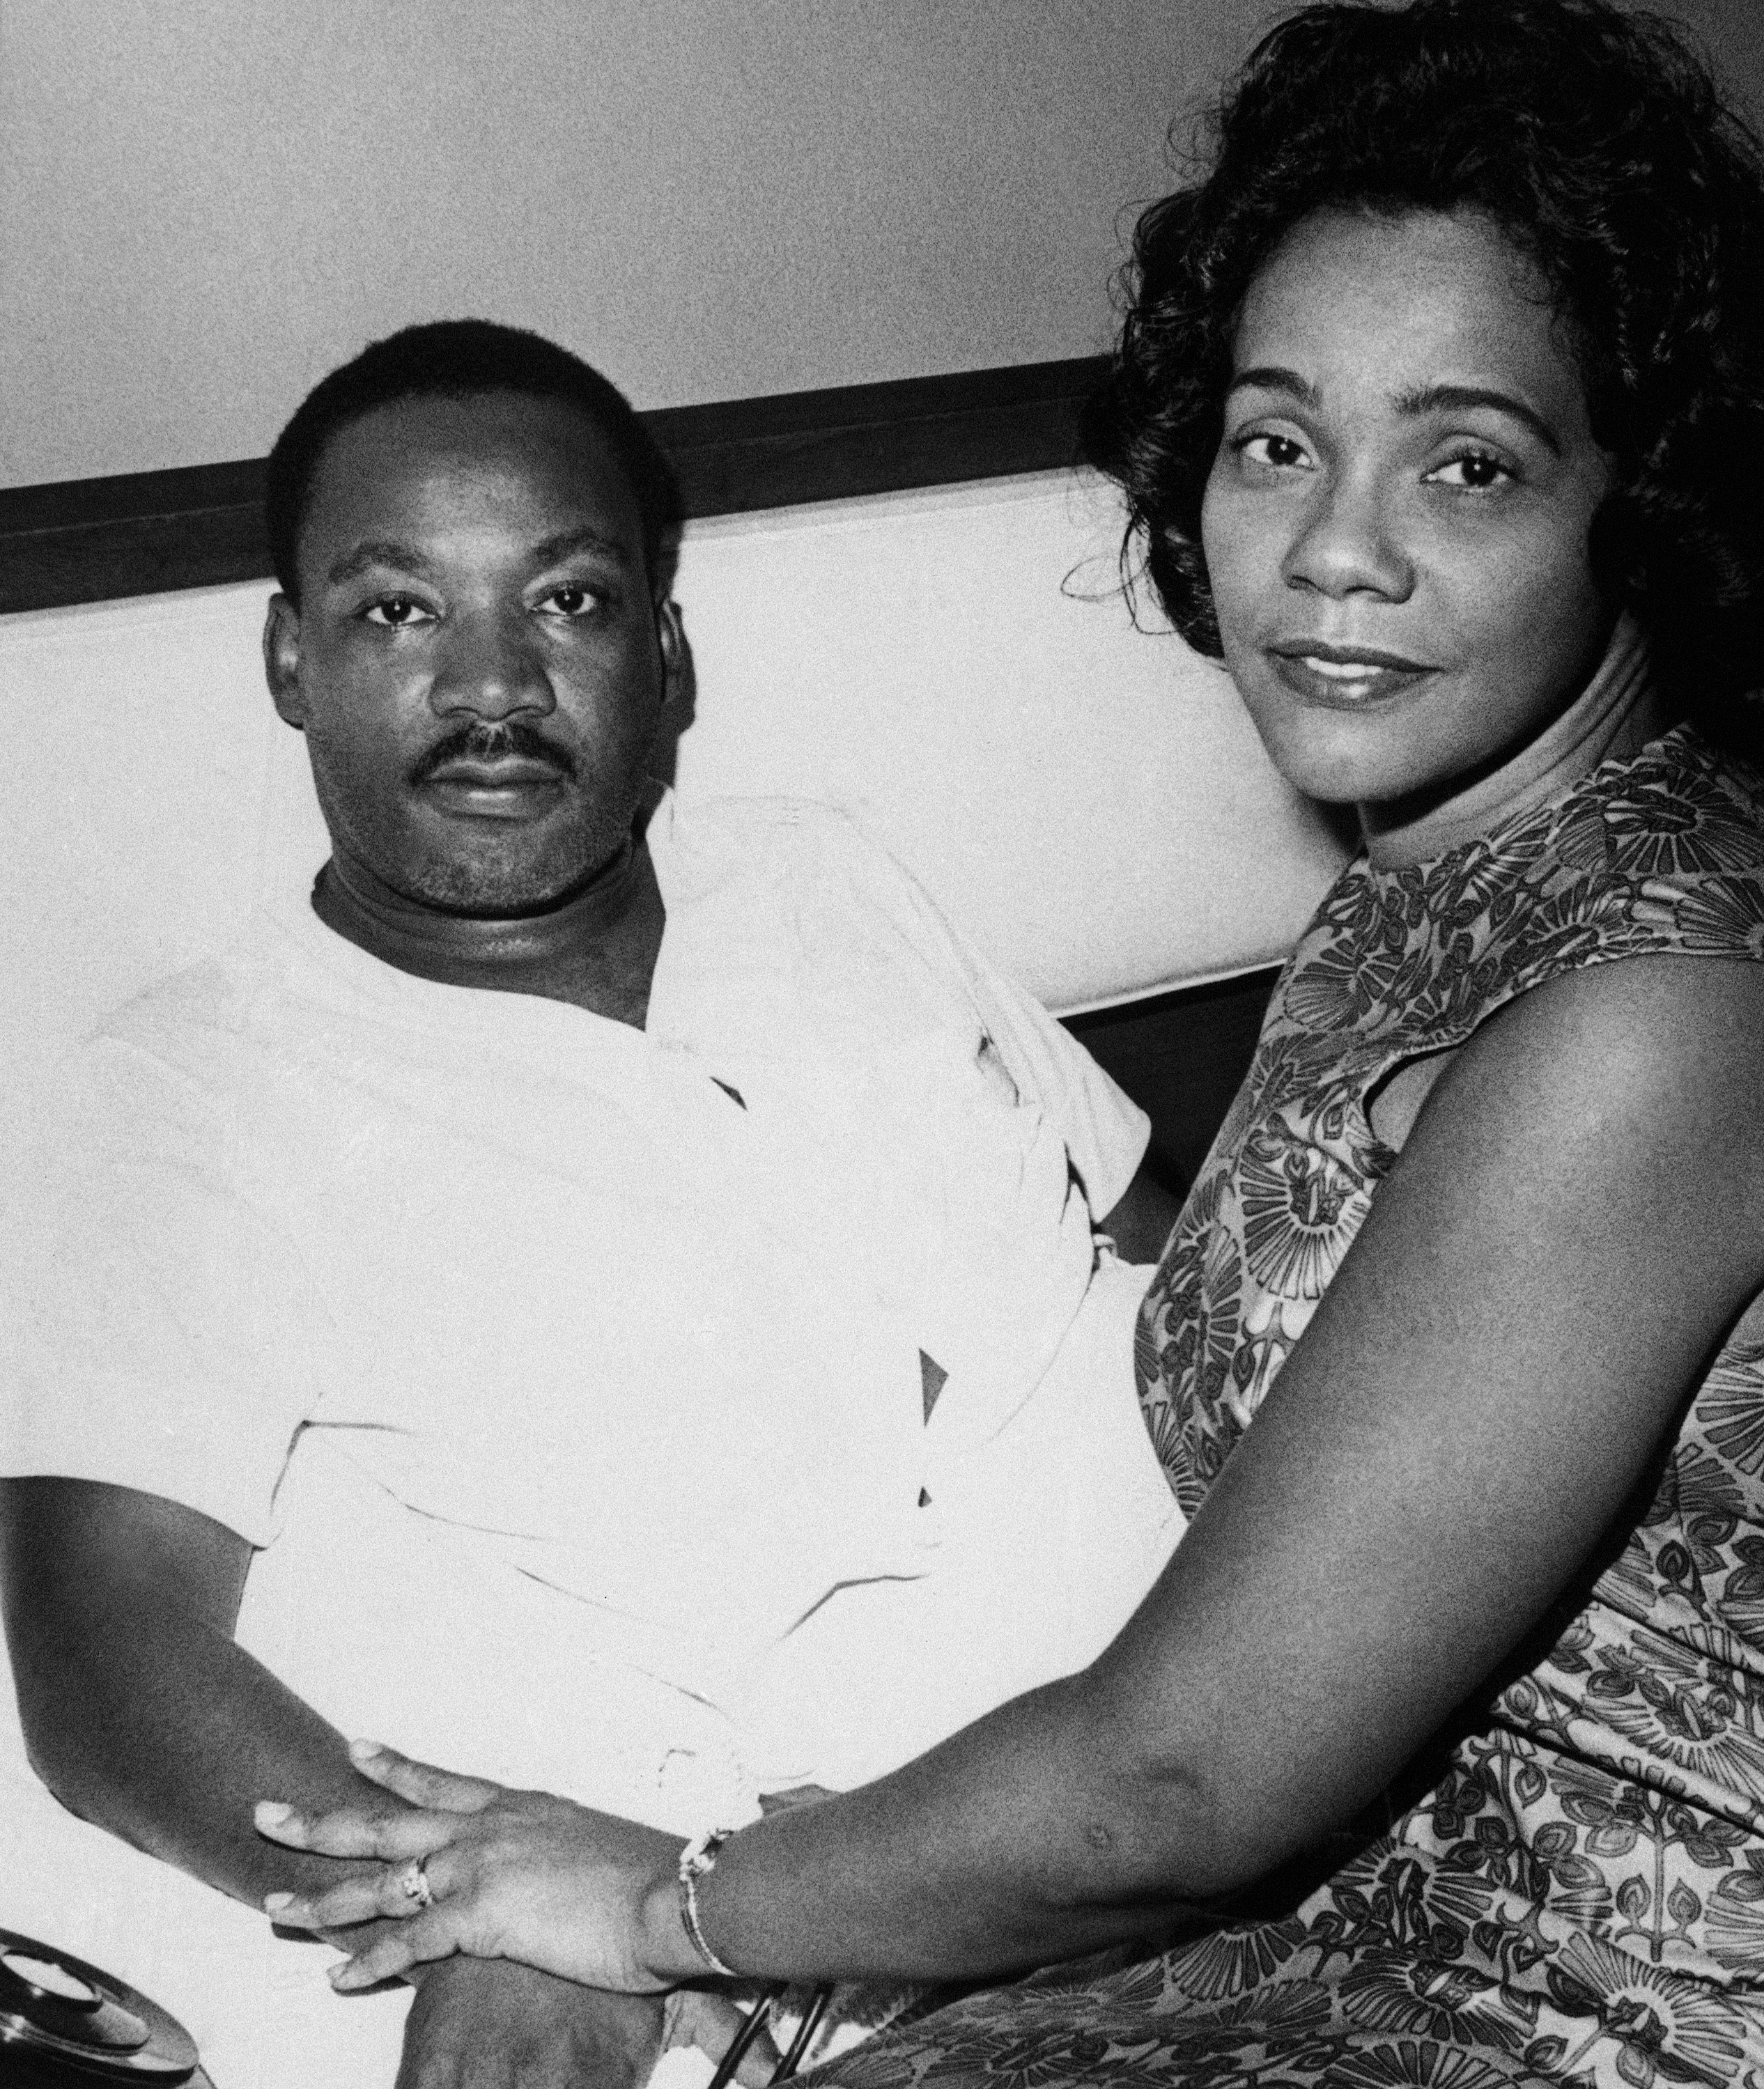 PHOTOS: Martin Luther King Jr.'s Family Life | ATL1968